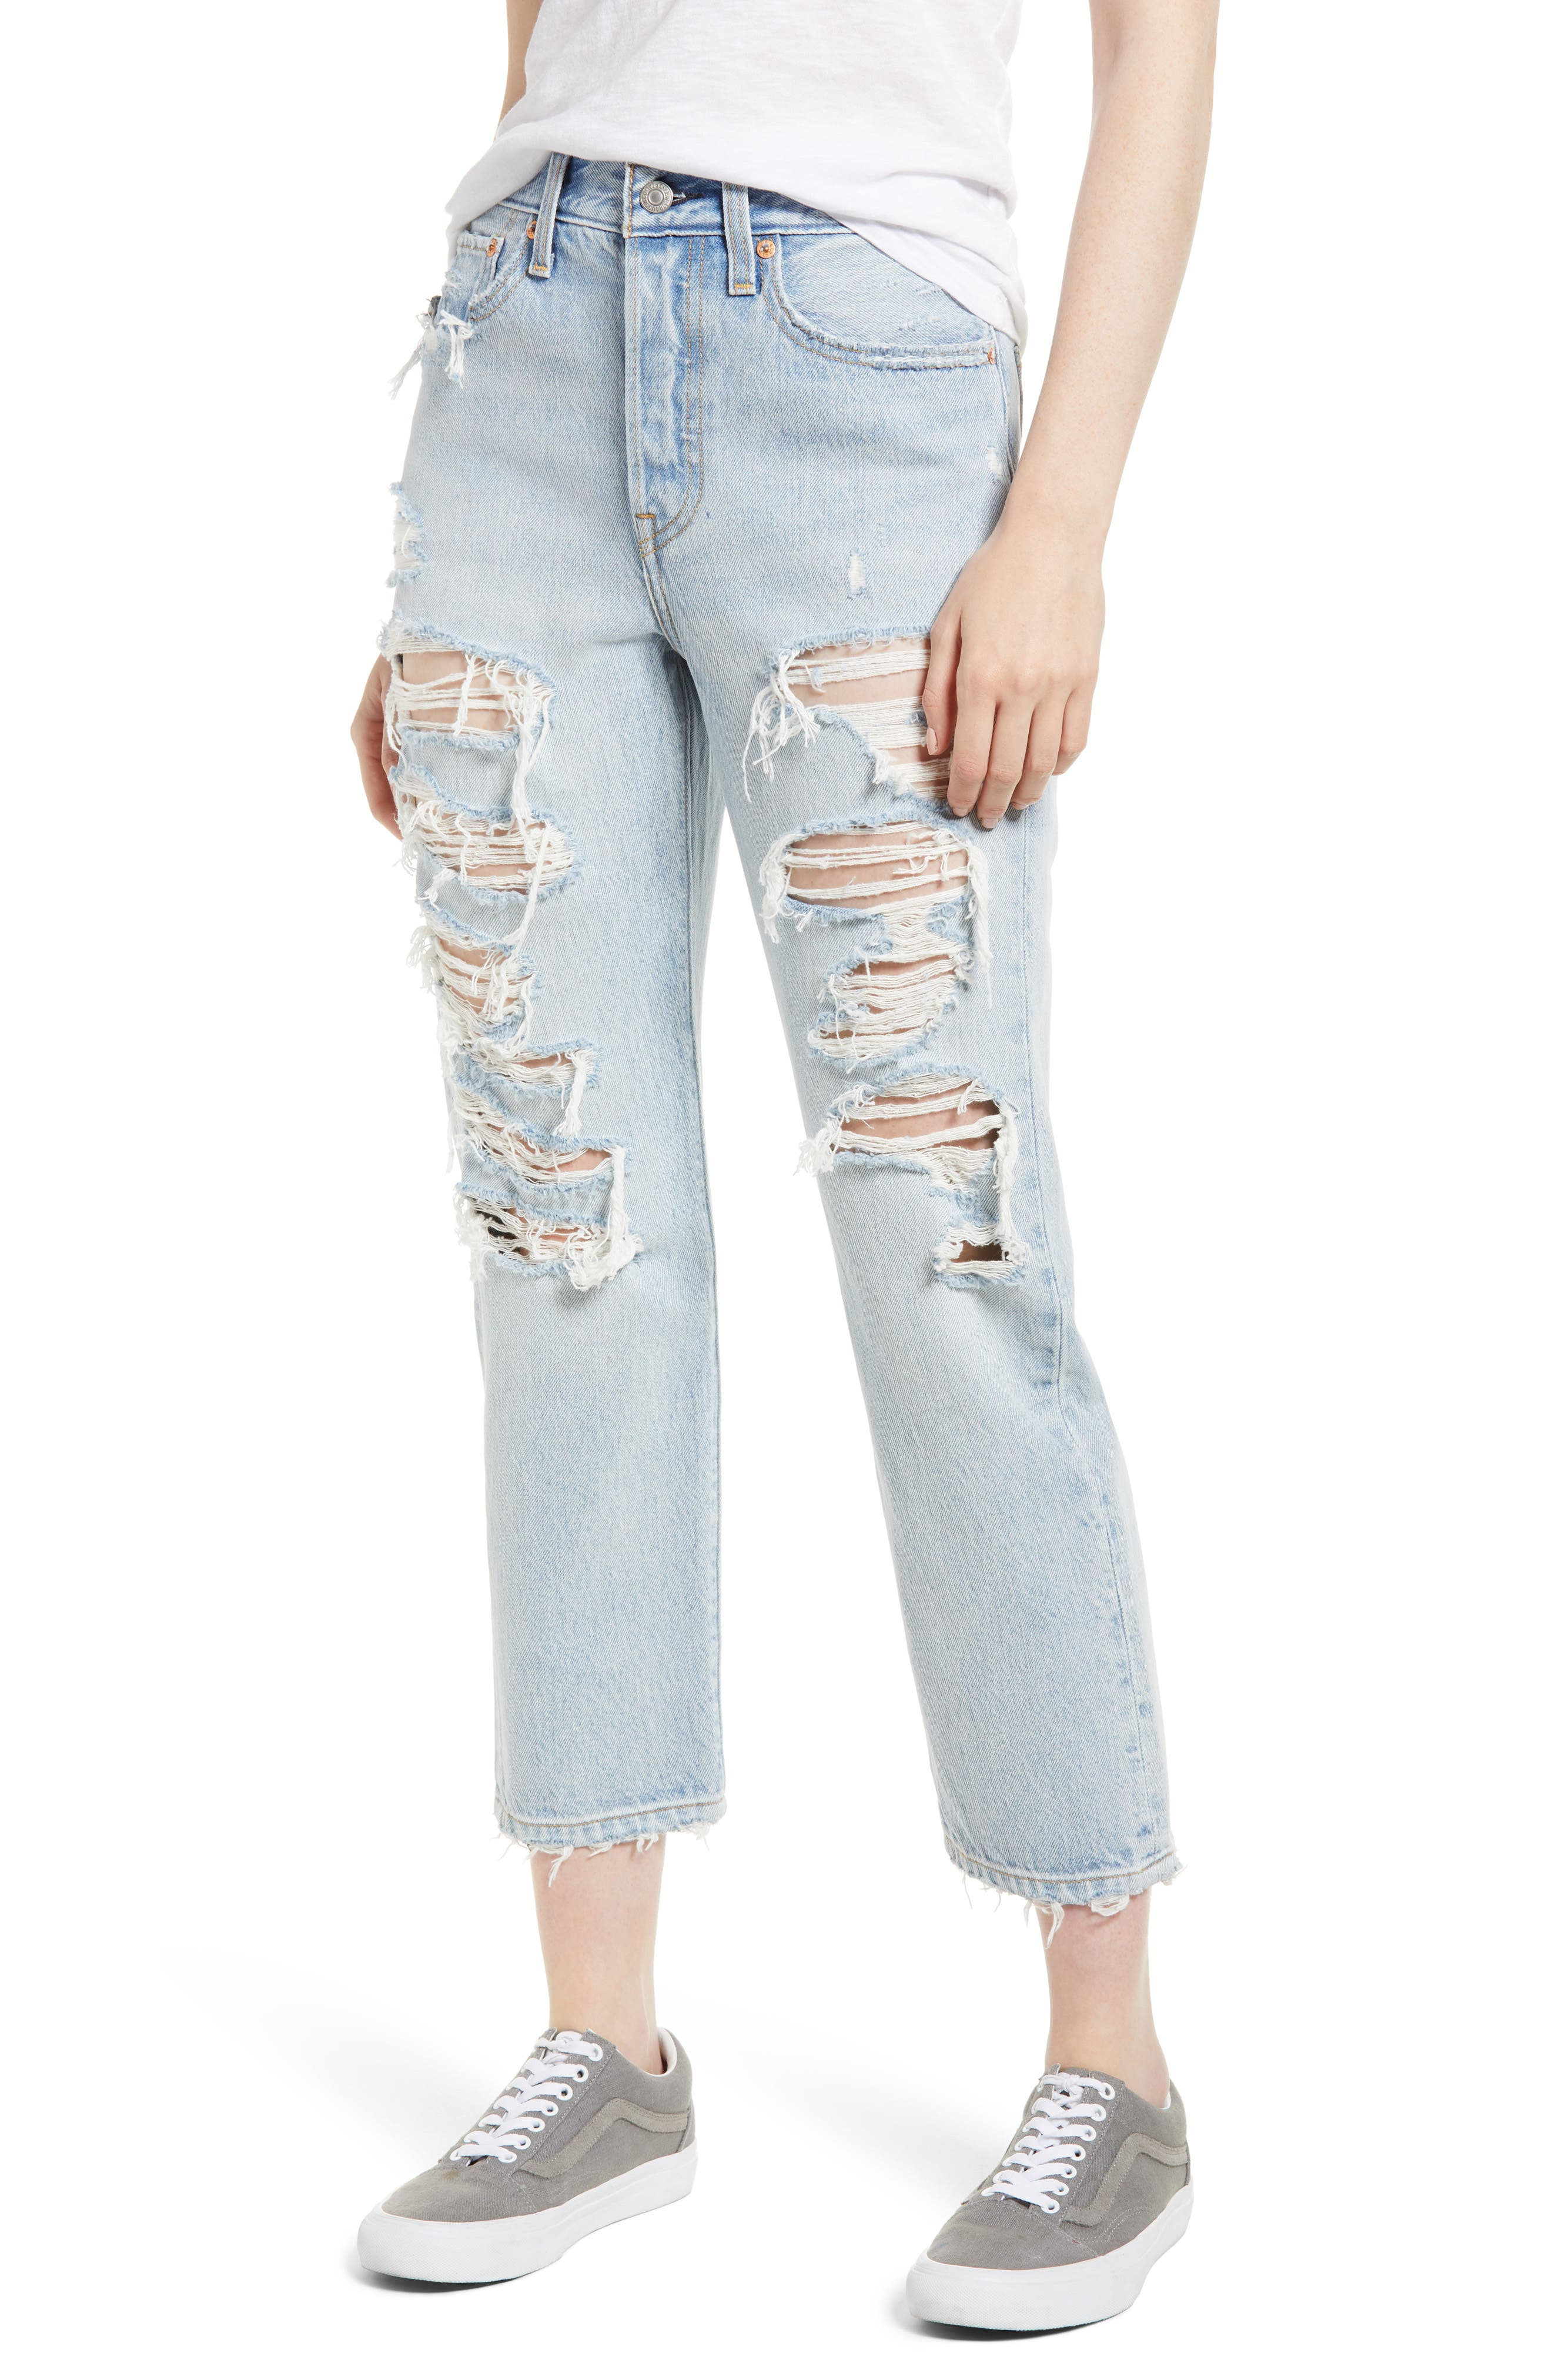 Wedgie High Waist Ripped Straight Jeans,                             Main thumbnail 1, color,                             Light Blue 1